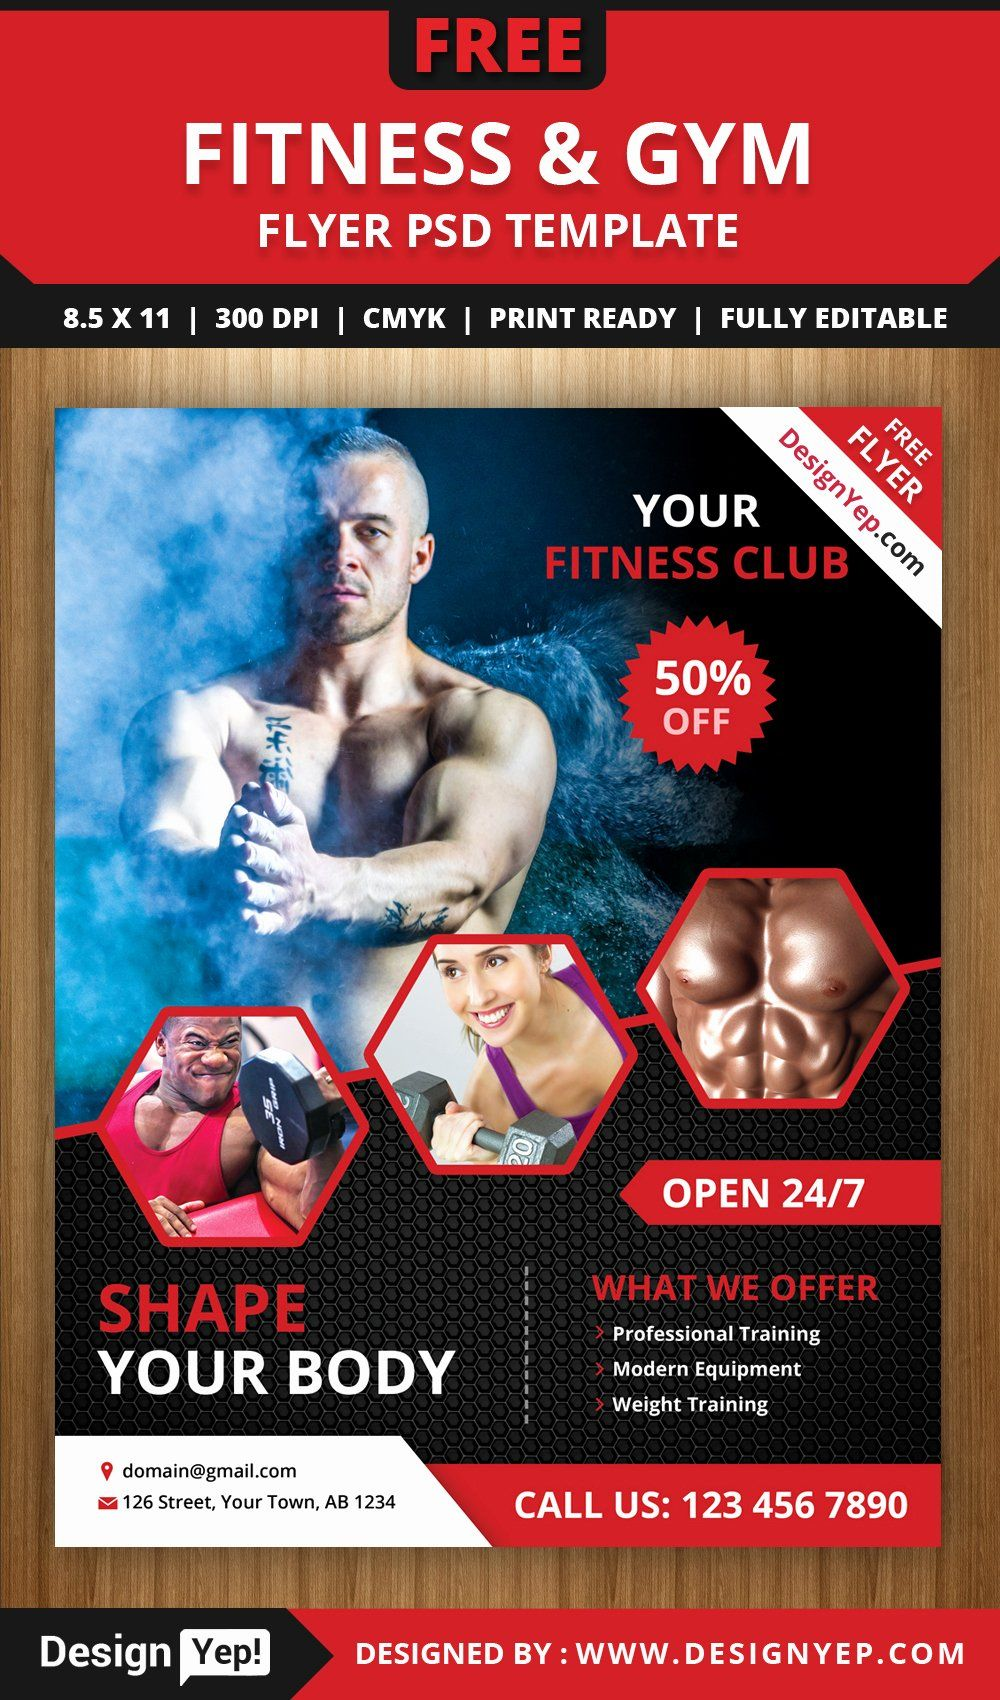 Fitness Flyer Template Free Inspirational Free Fitness And Gym Flyer Psd Template Designyep Fitness Flyer Flyer Free Flyer Template